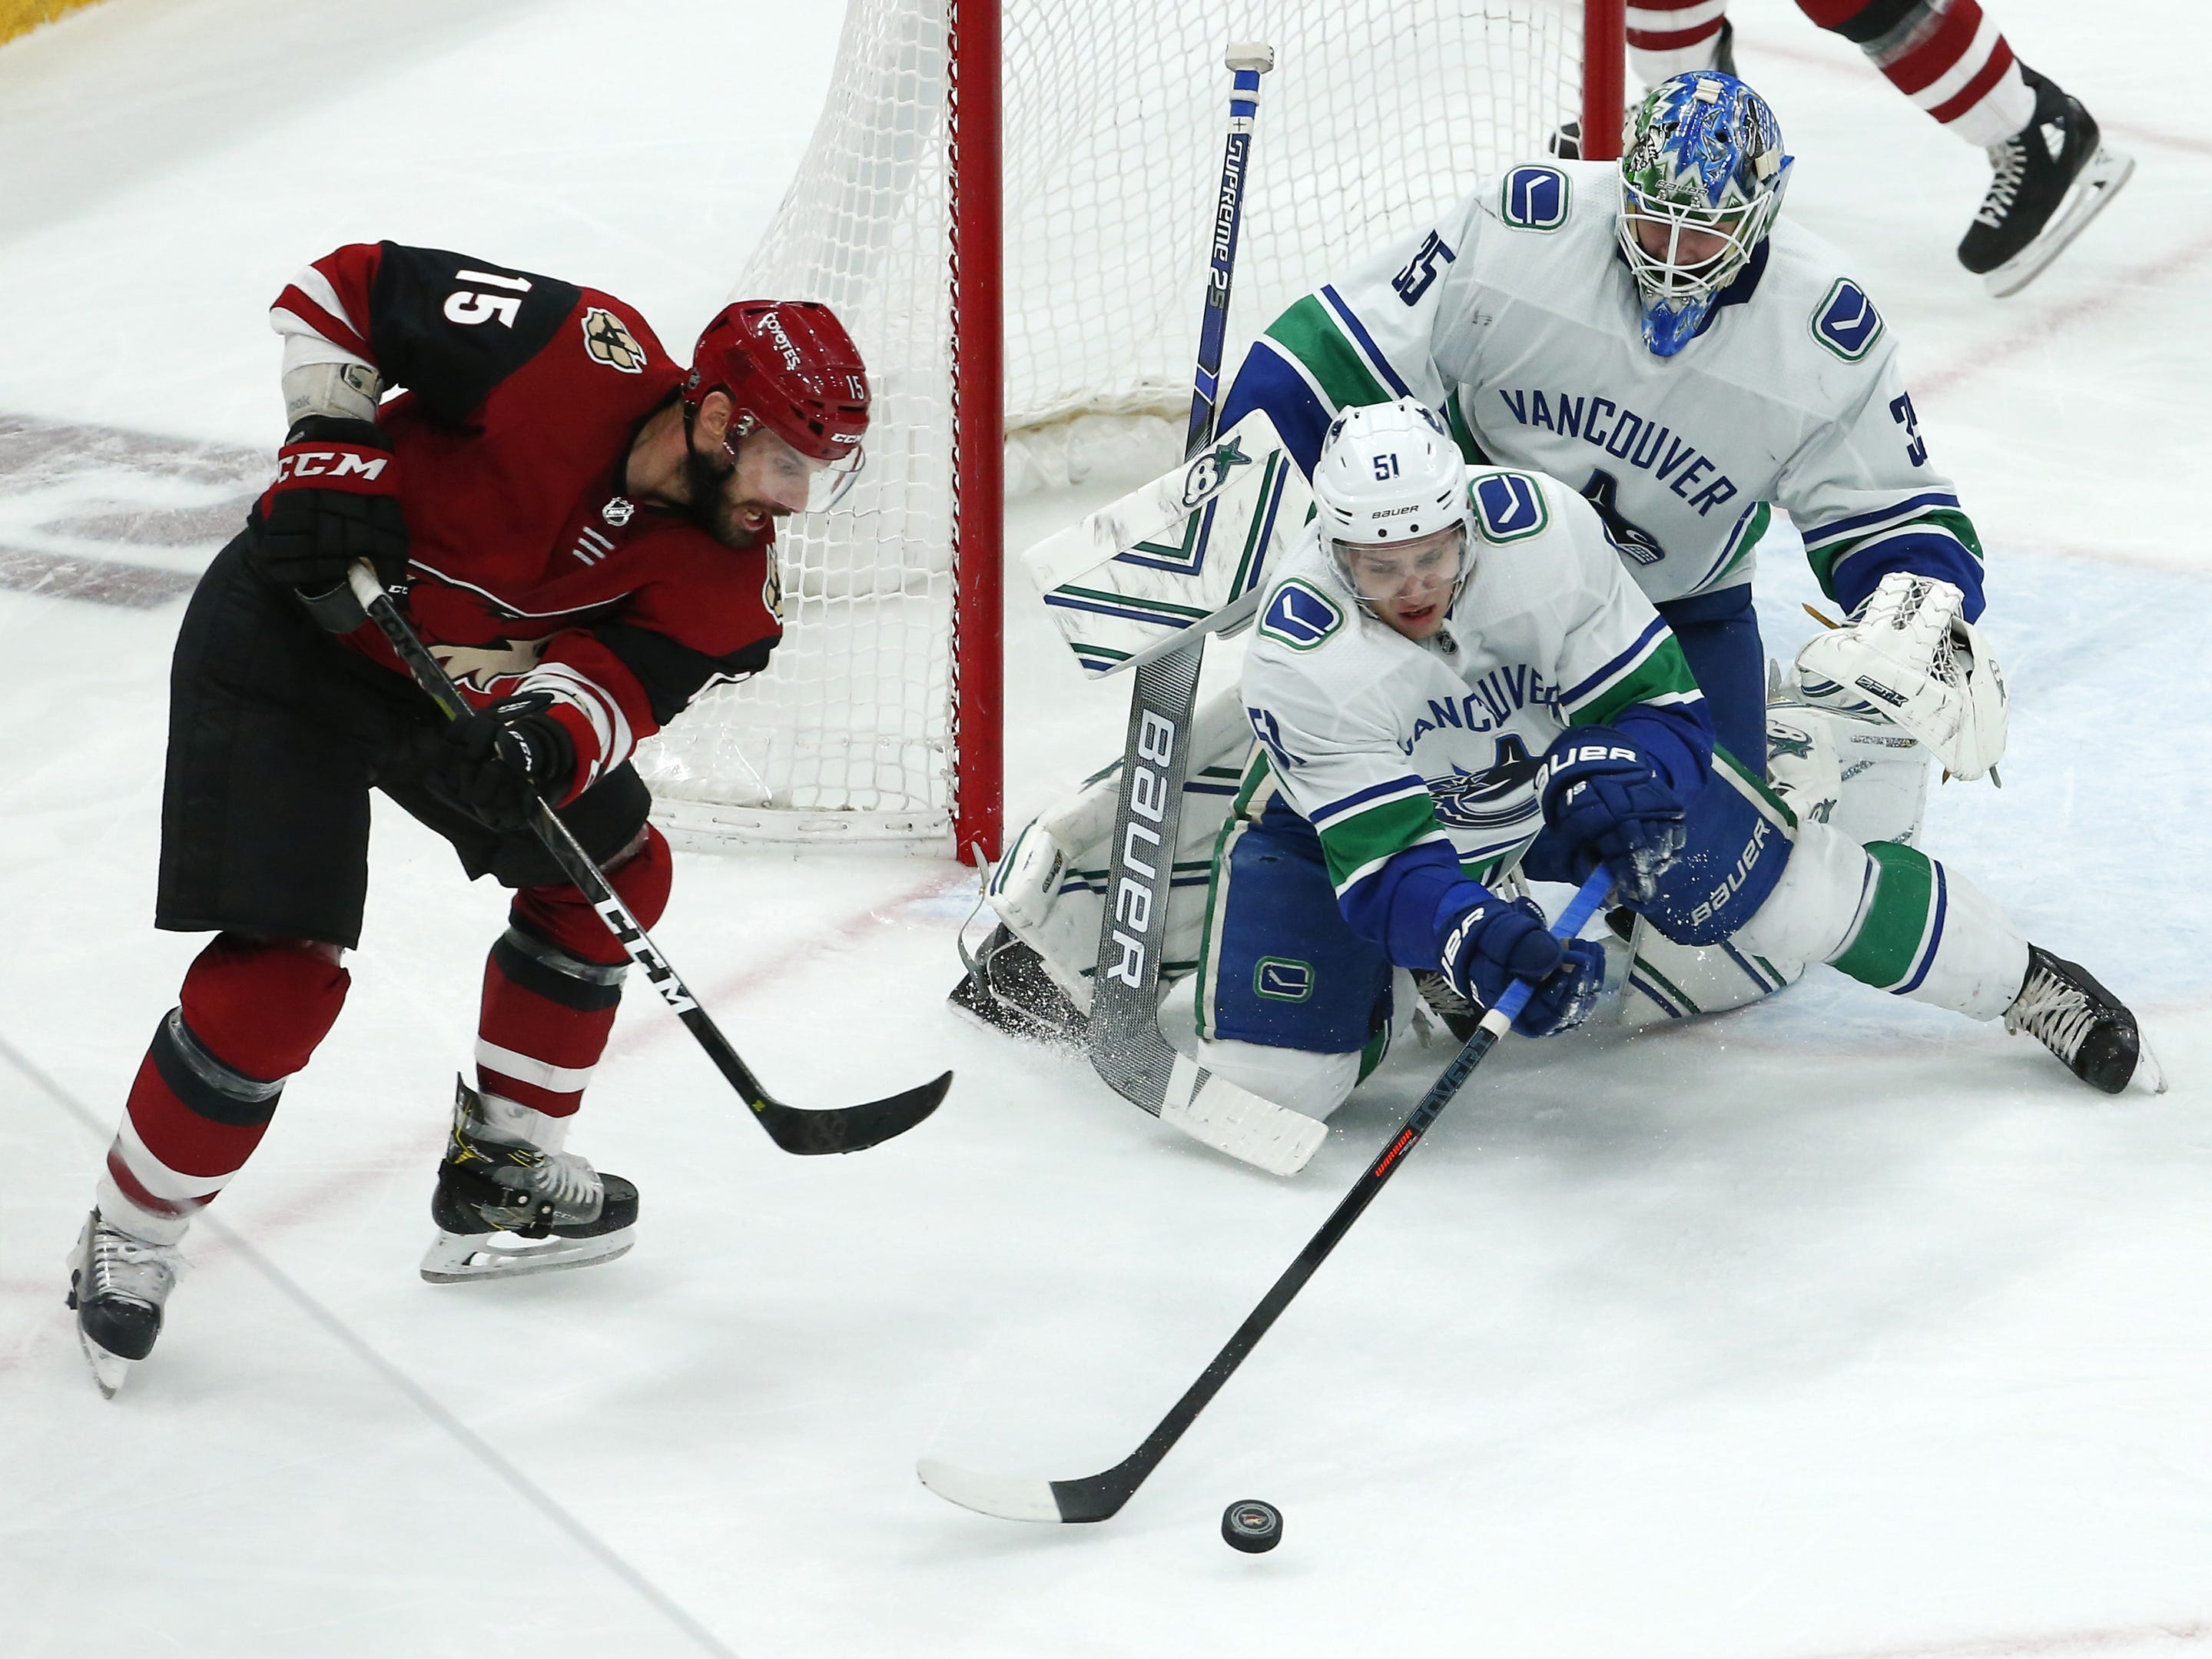 Arizona Coyotes center Brad Richardson (15) battles Vancouver Canucks defenseman Troy Stecher (51) for the puck during a NHL game at Gila River Arena in Glendale on February 28.